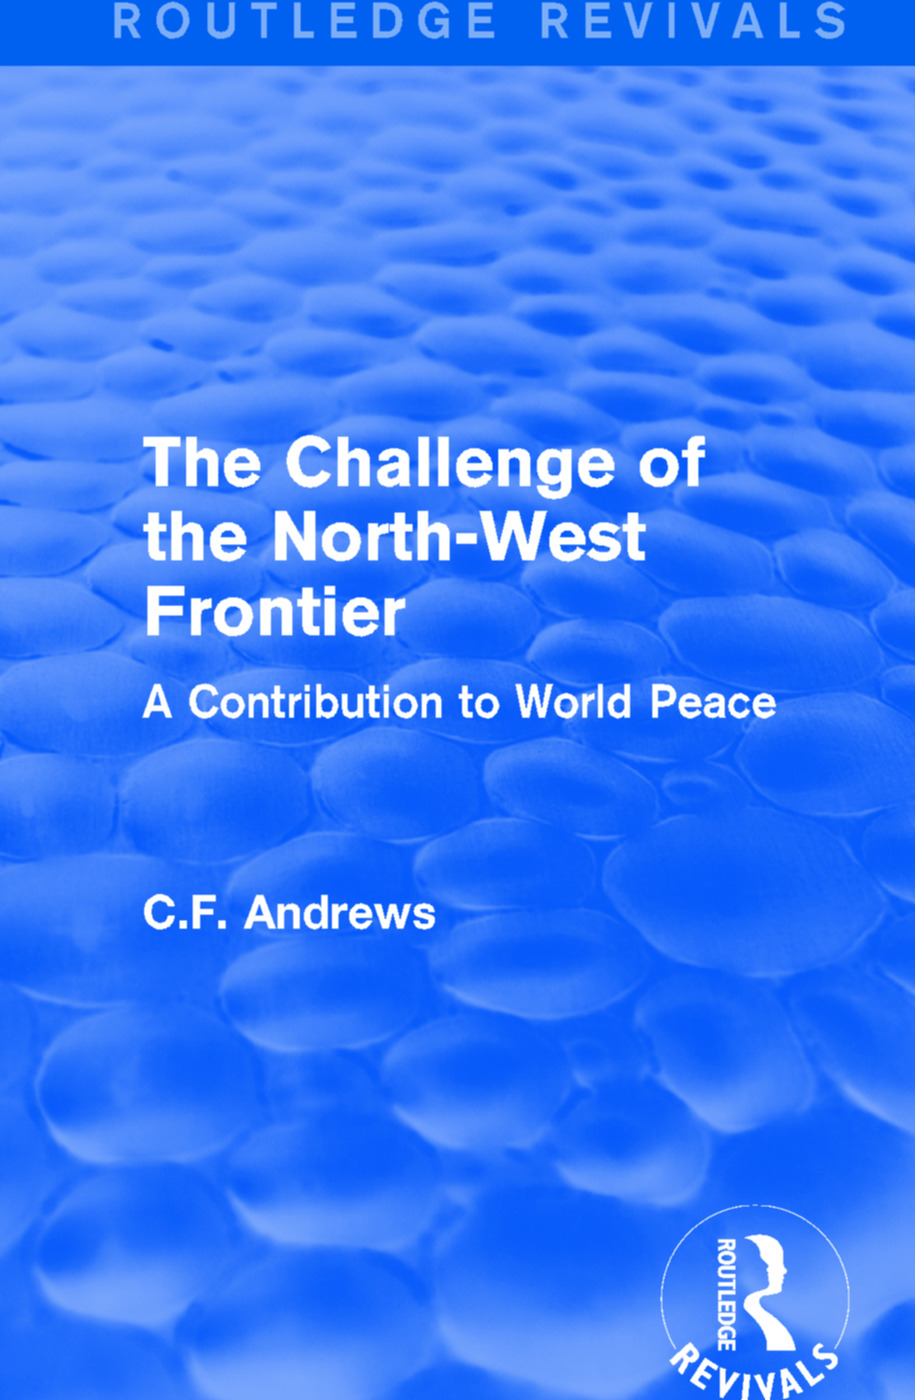 Routledge Revivals: The Challenge of the North-West Frontier (1937): A Contribution to World Peace book cover